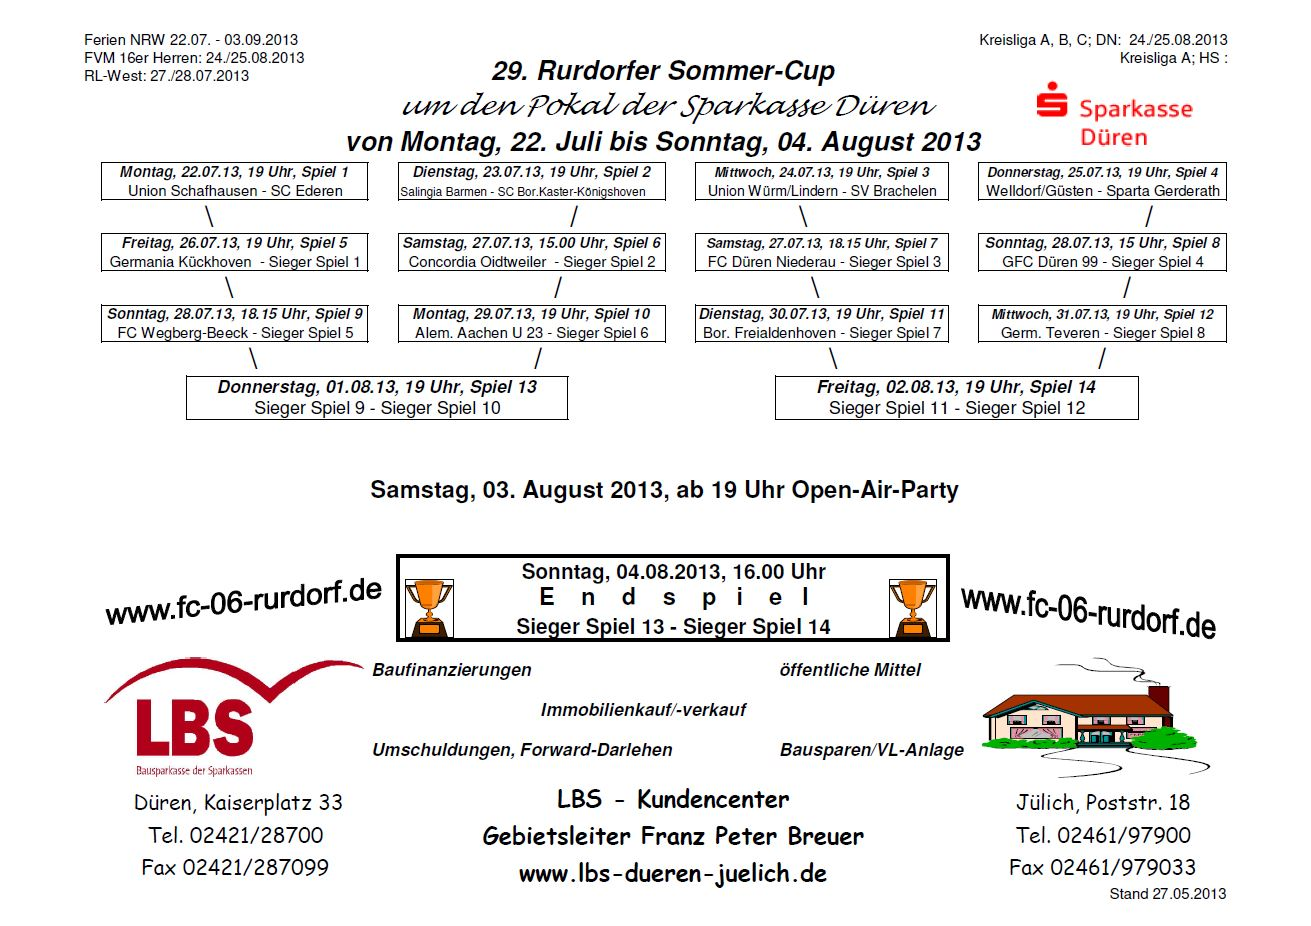 Rurdorfer Sommer-Cup 2013